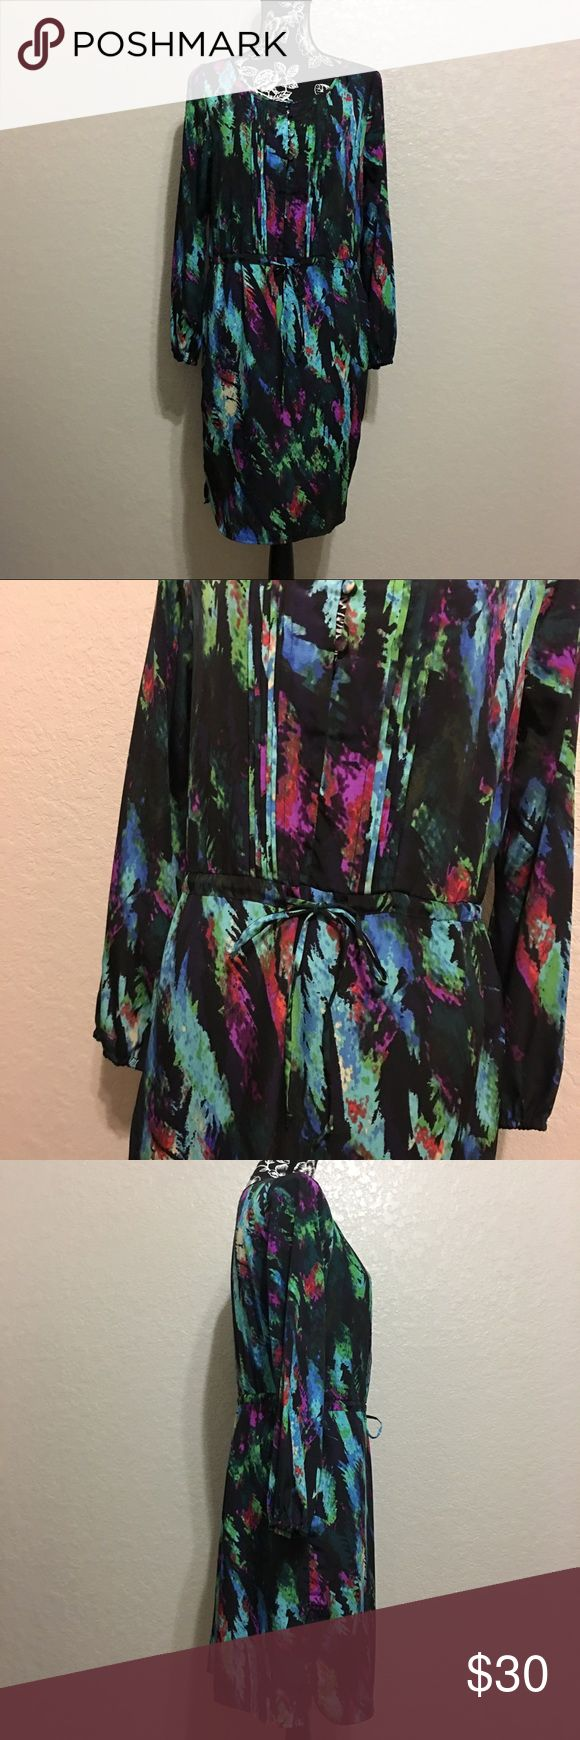 "Anthropologie Charlie Jade multicolor Dress In GOOD CONDITION NO STAINS NO HOLES! Measurements are Bust 19"" Length 37"" Anthropologie Dresses Mini"